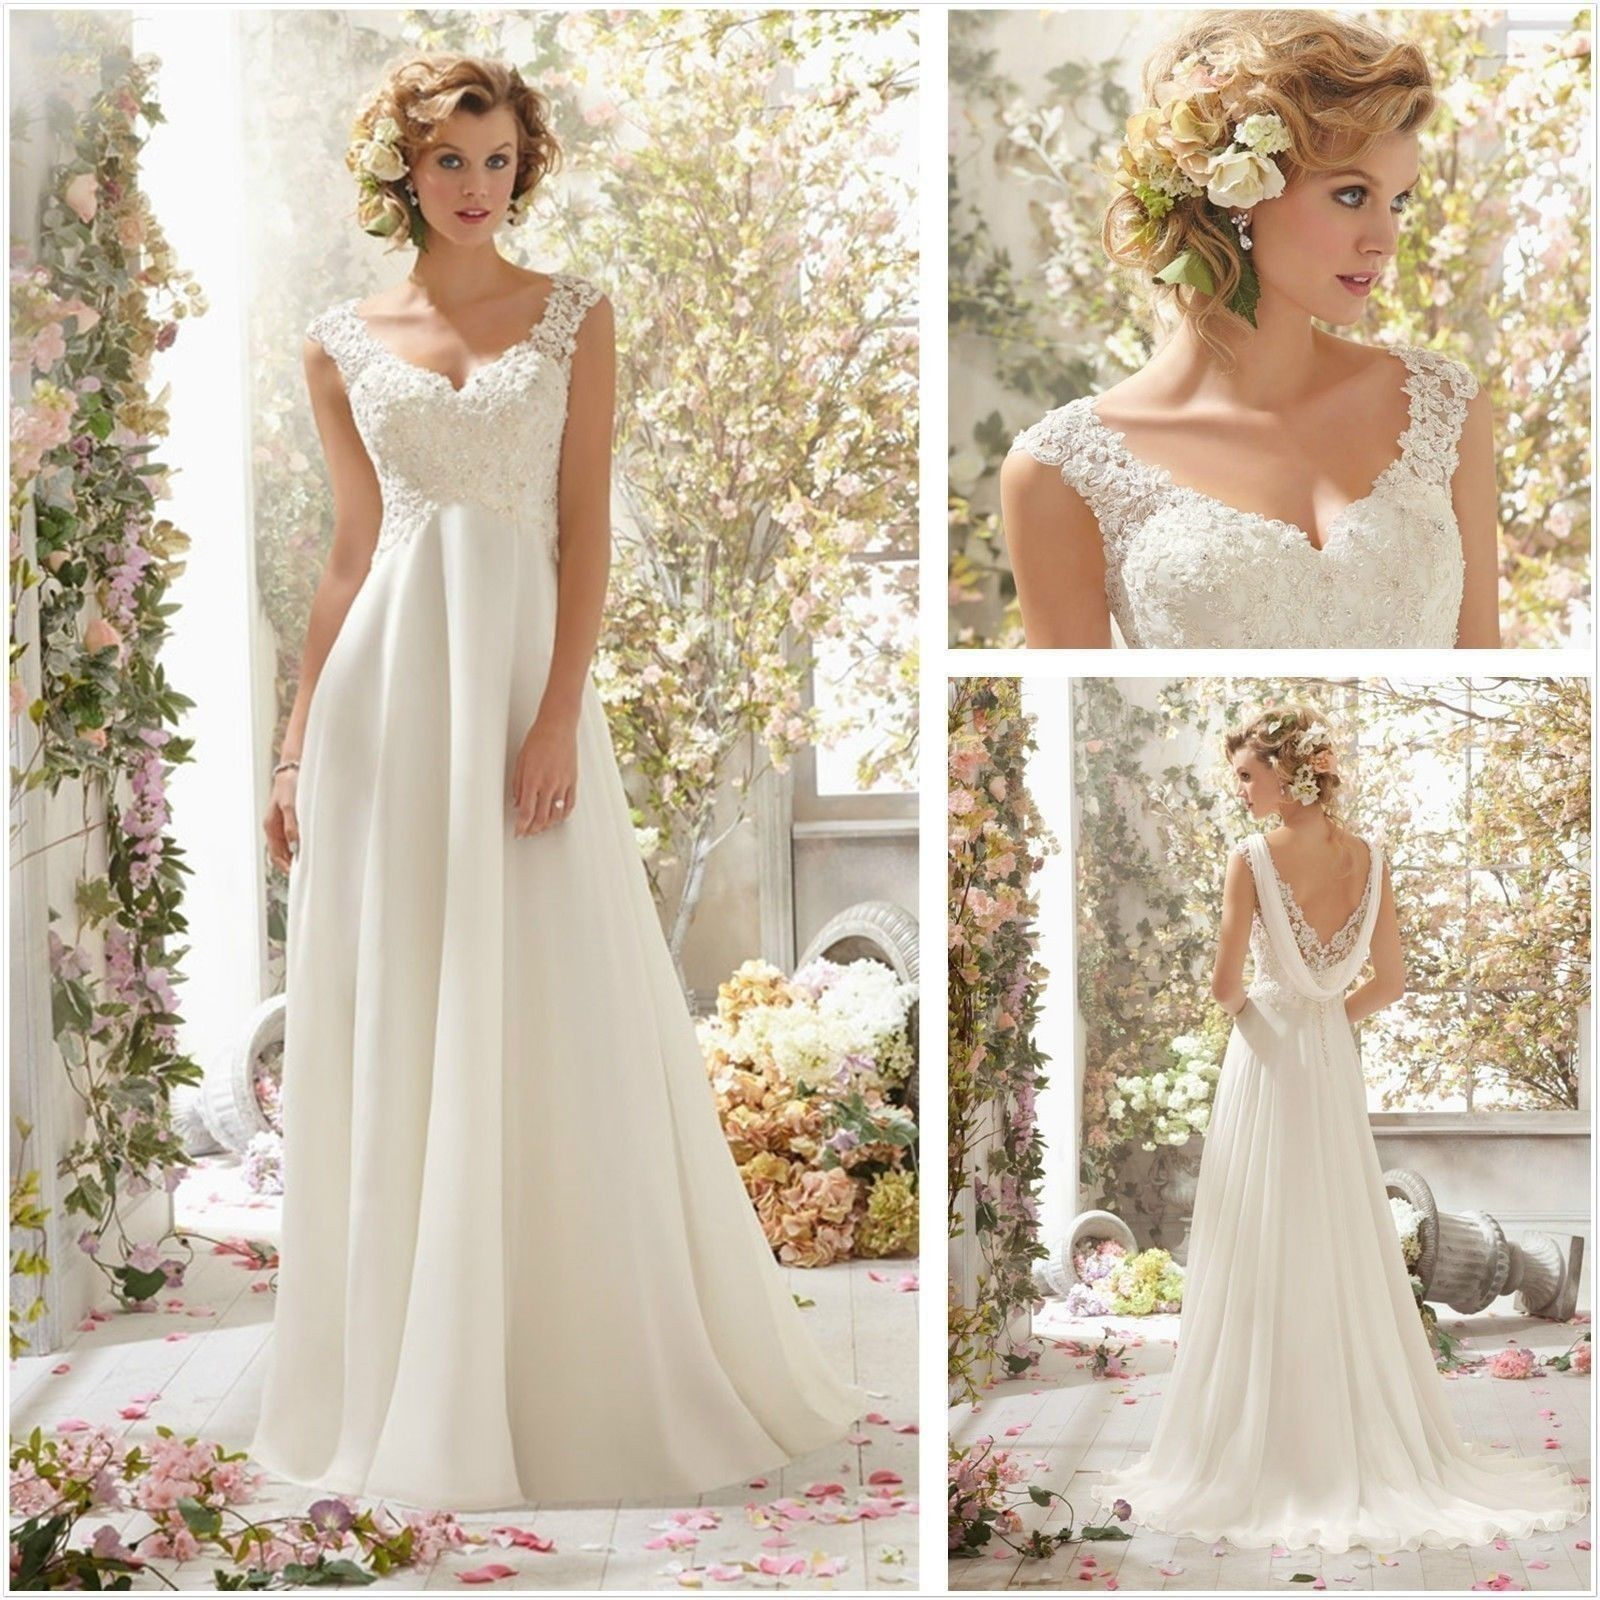 f7b665f0885 New White ivory Full-Length Chiffon Lace Applique Formal Dress Inventory on  Luulla